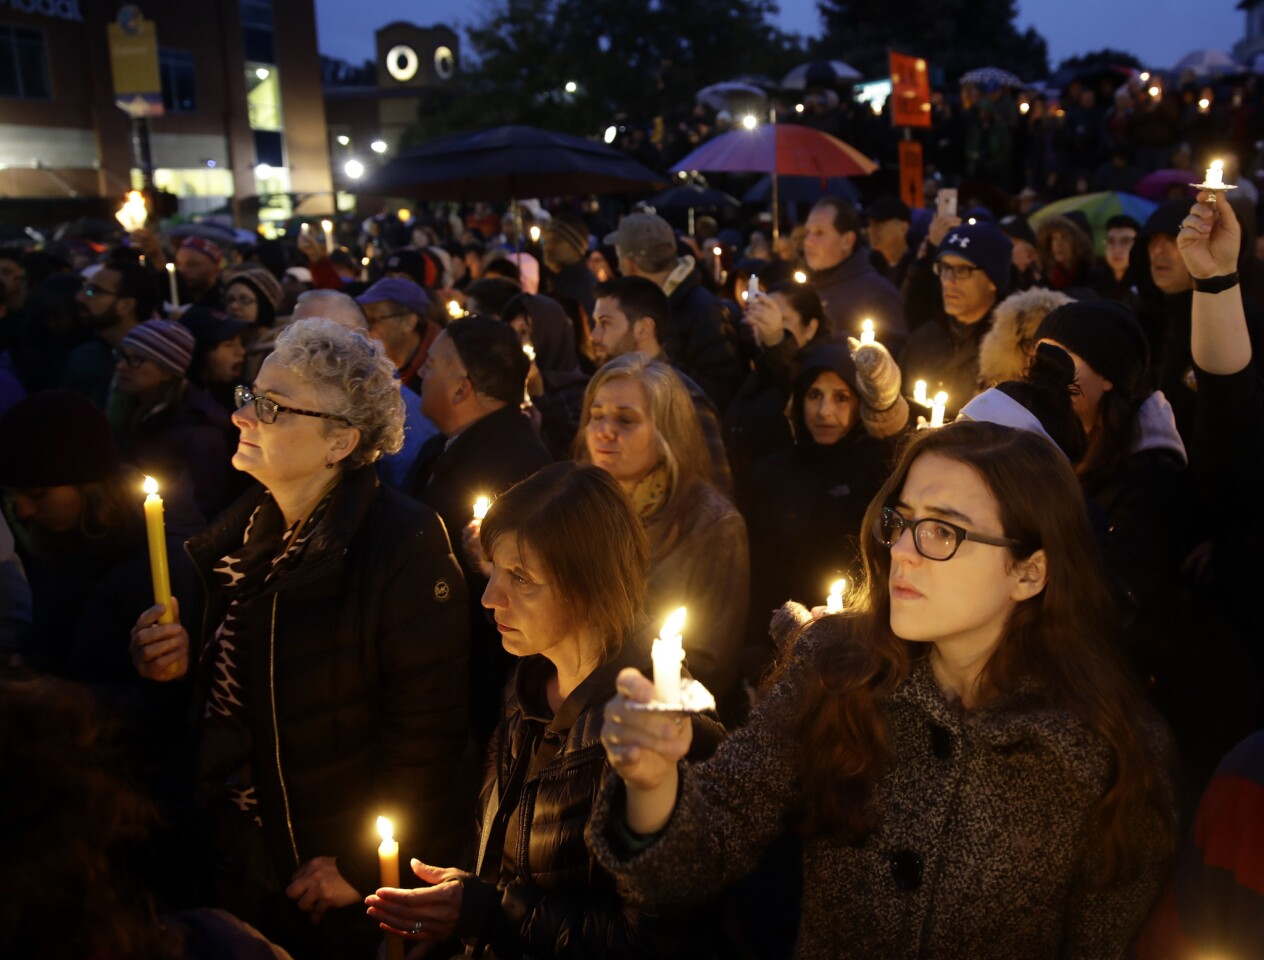 People hold candles as they gather for a vigil in the aftermath of a deadly shooting at the Tree of Life synangogue in the Squirrel Hill neighborhood of Pittsburgh on Oct. 27, 2018.